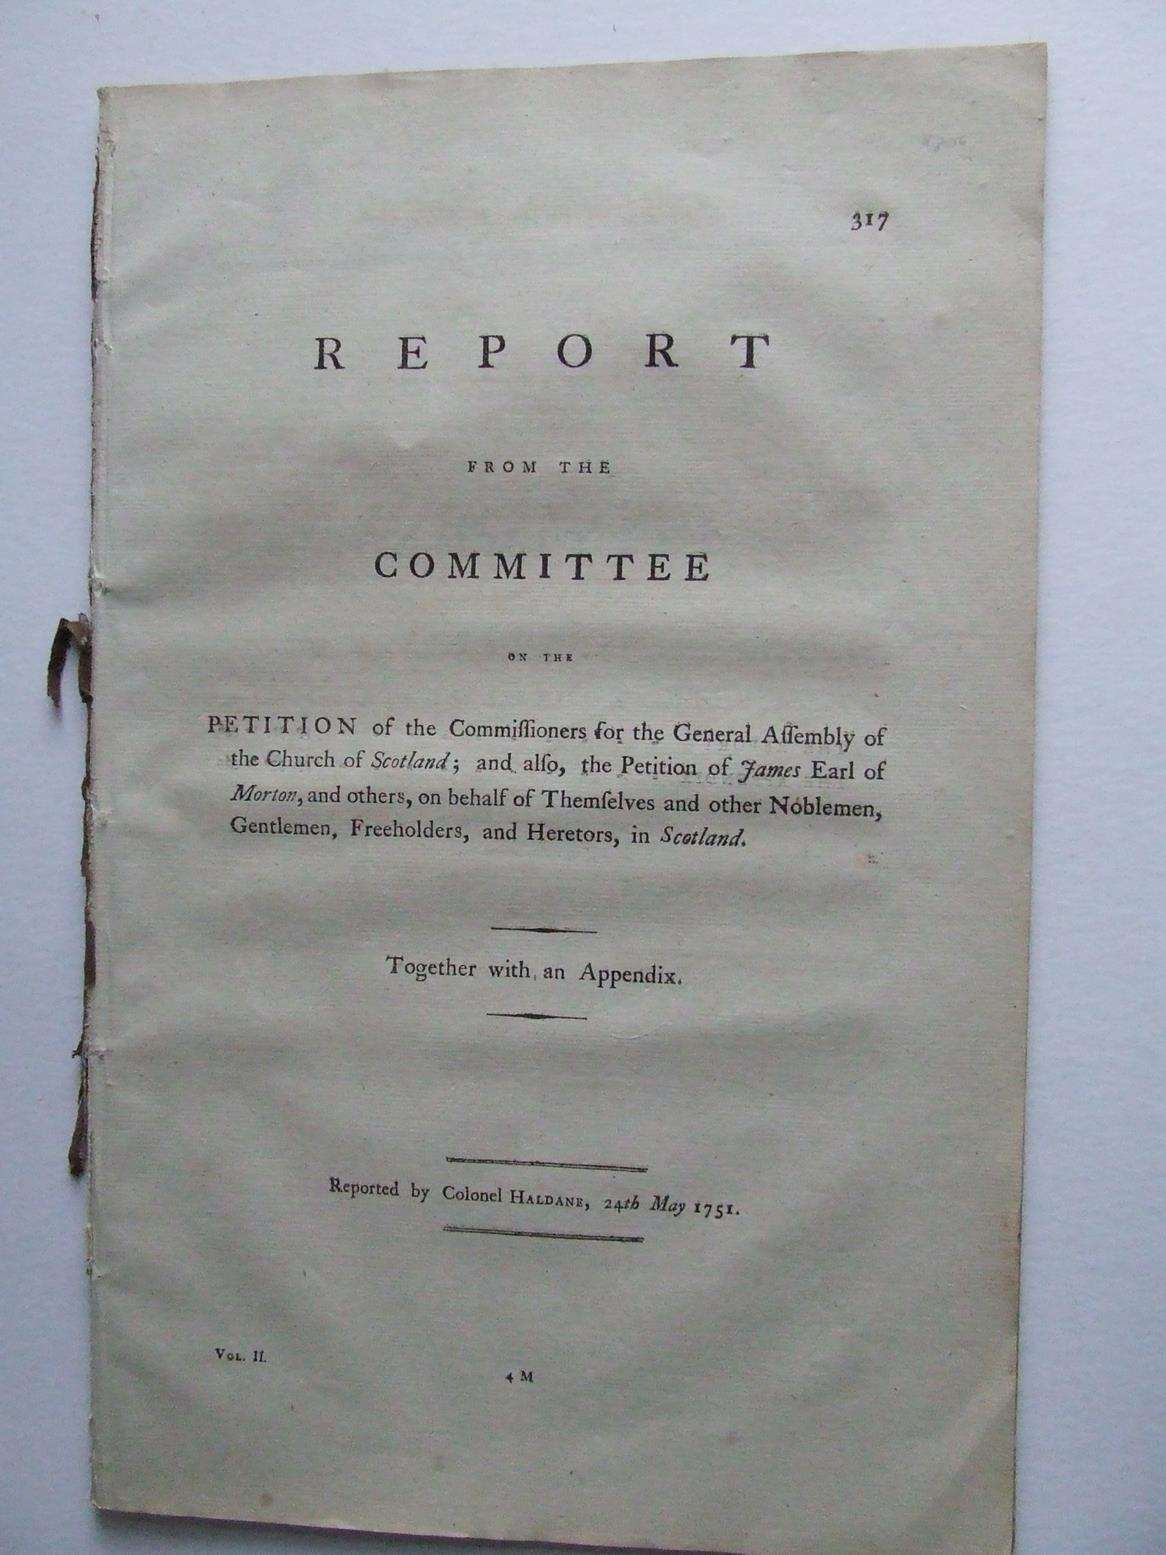 Report from the Committee to whom the petition of the Commissioners for the General Assembly of the Church of Scotland